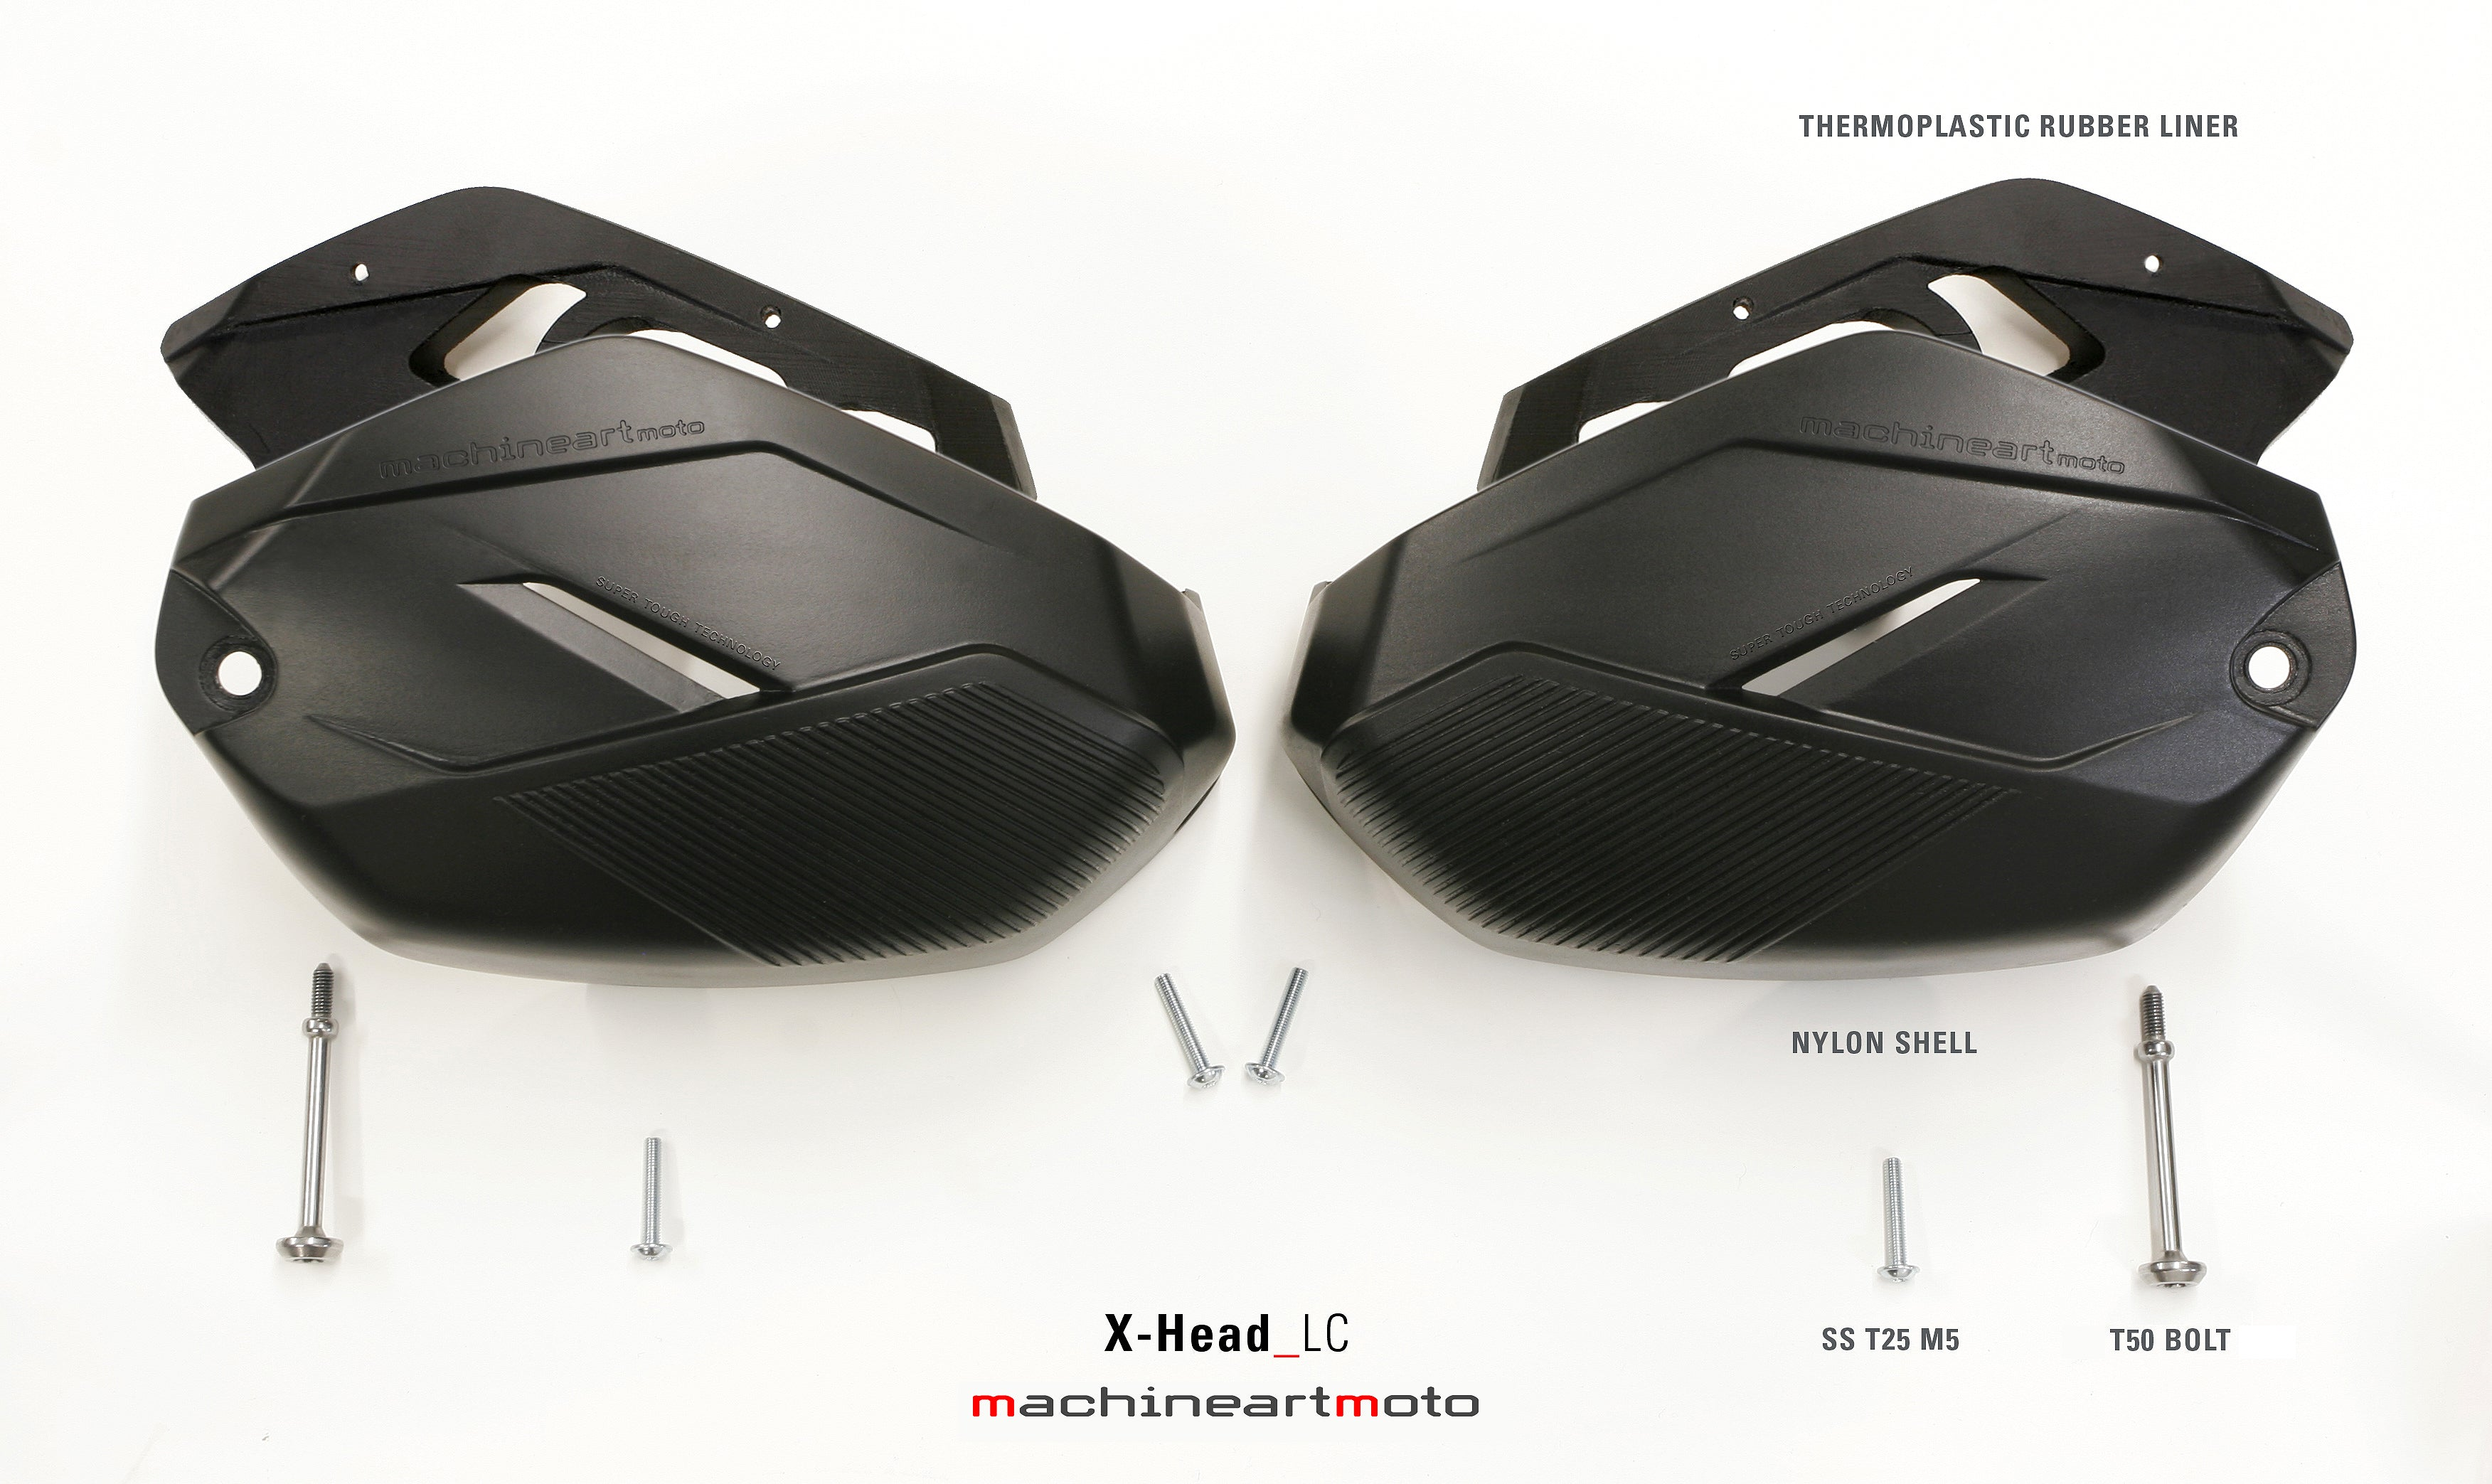 MACHINEARTMOTO - X-Head LC Protectores para Cilindro